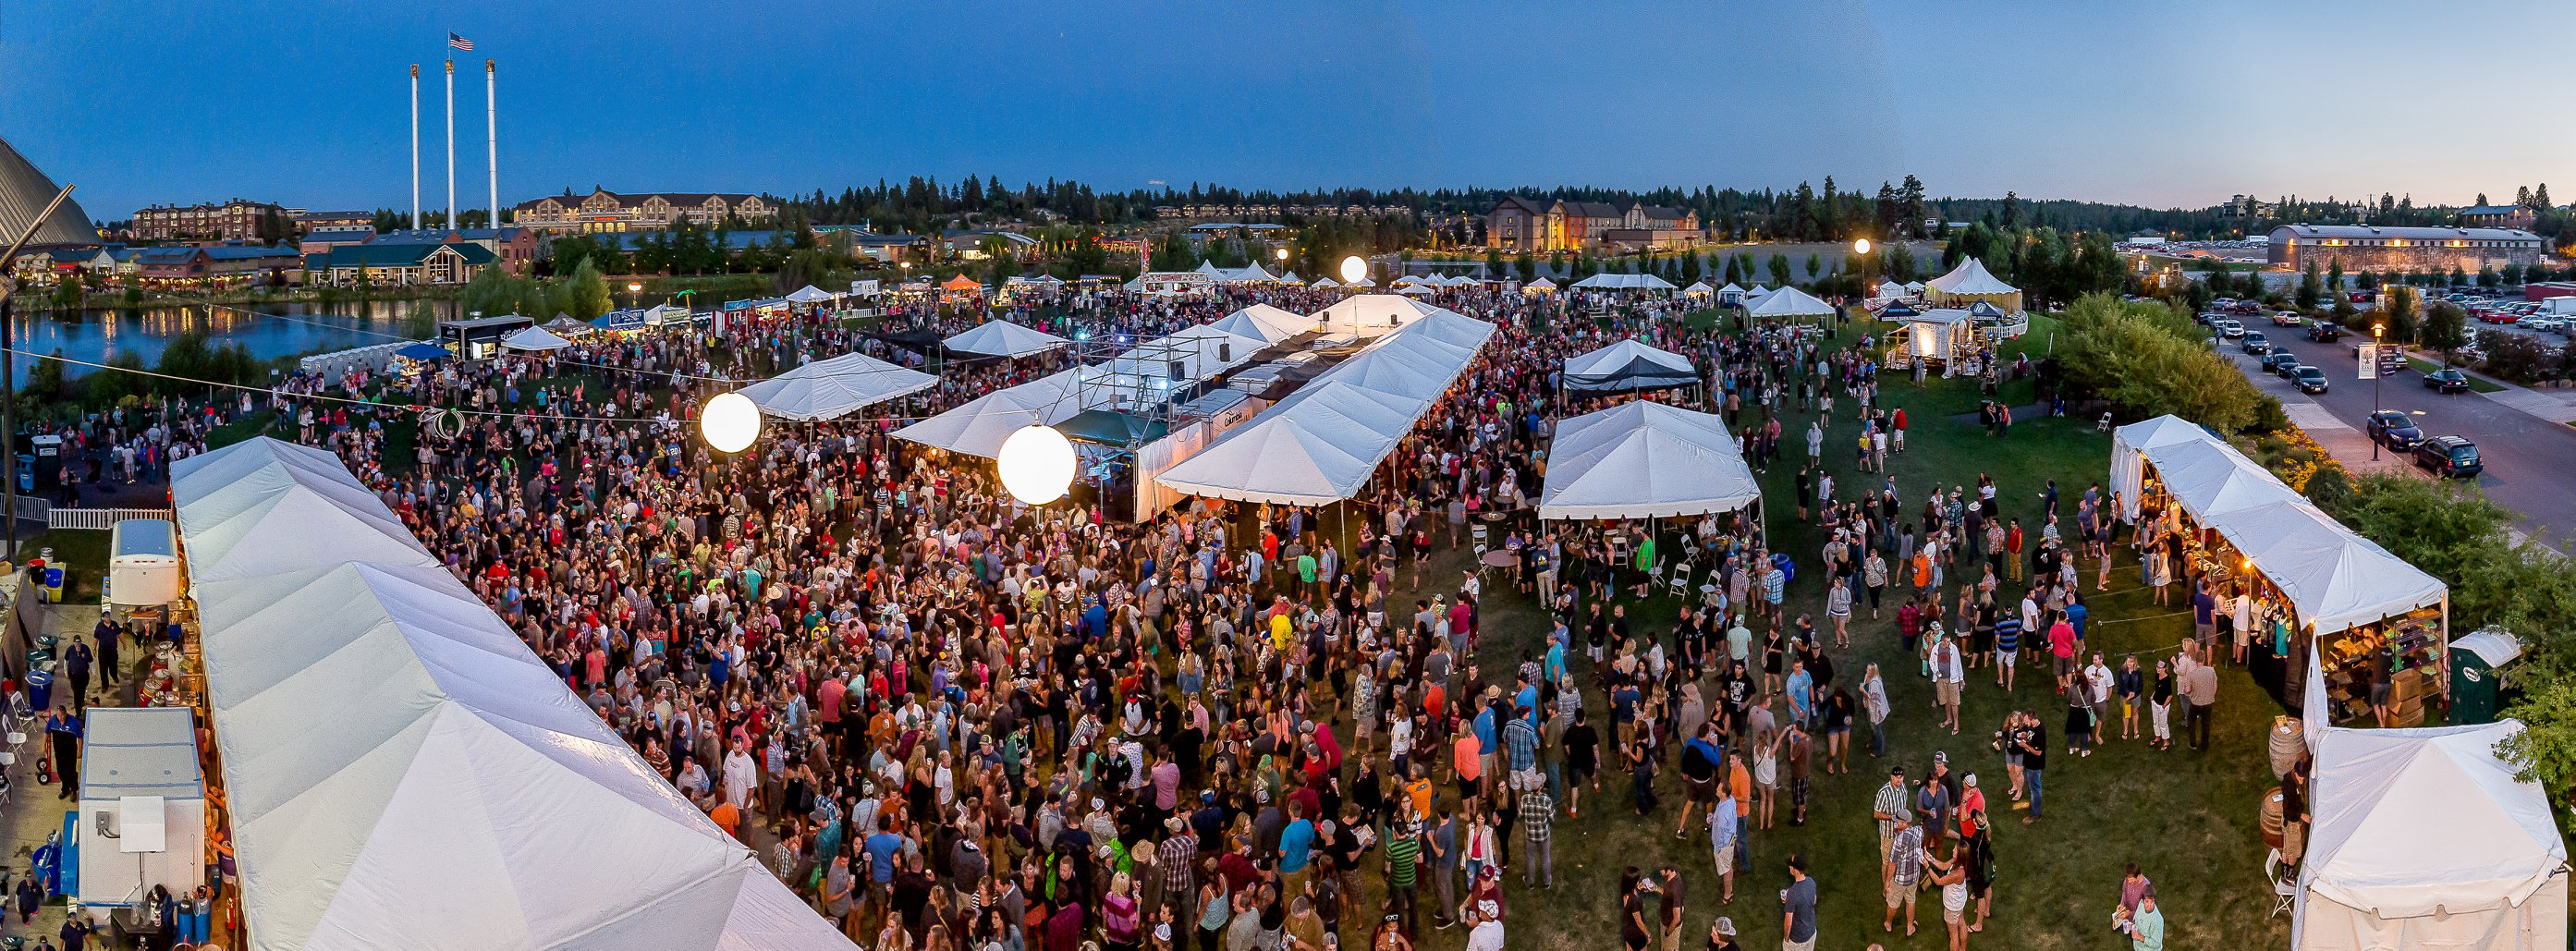 image courtesy of Bend Brewfest